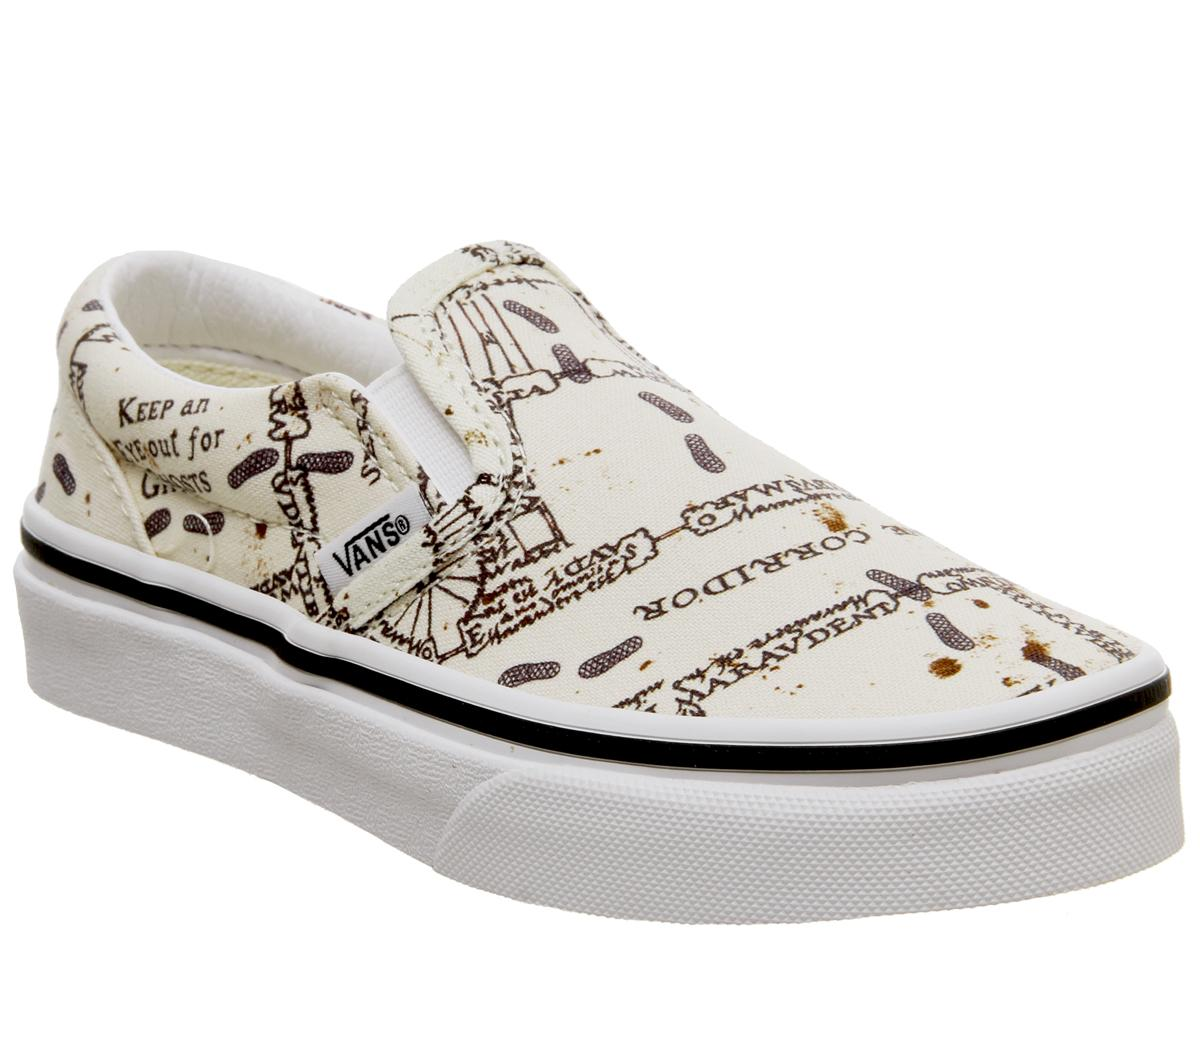 slip on trainers for kids